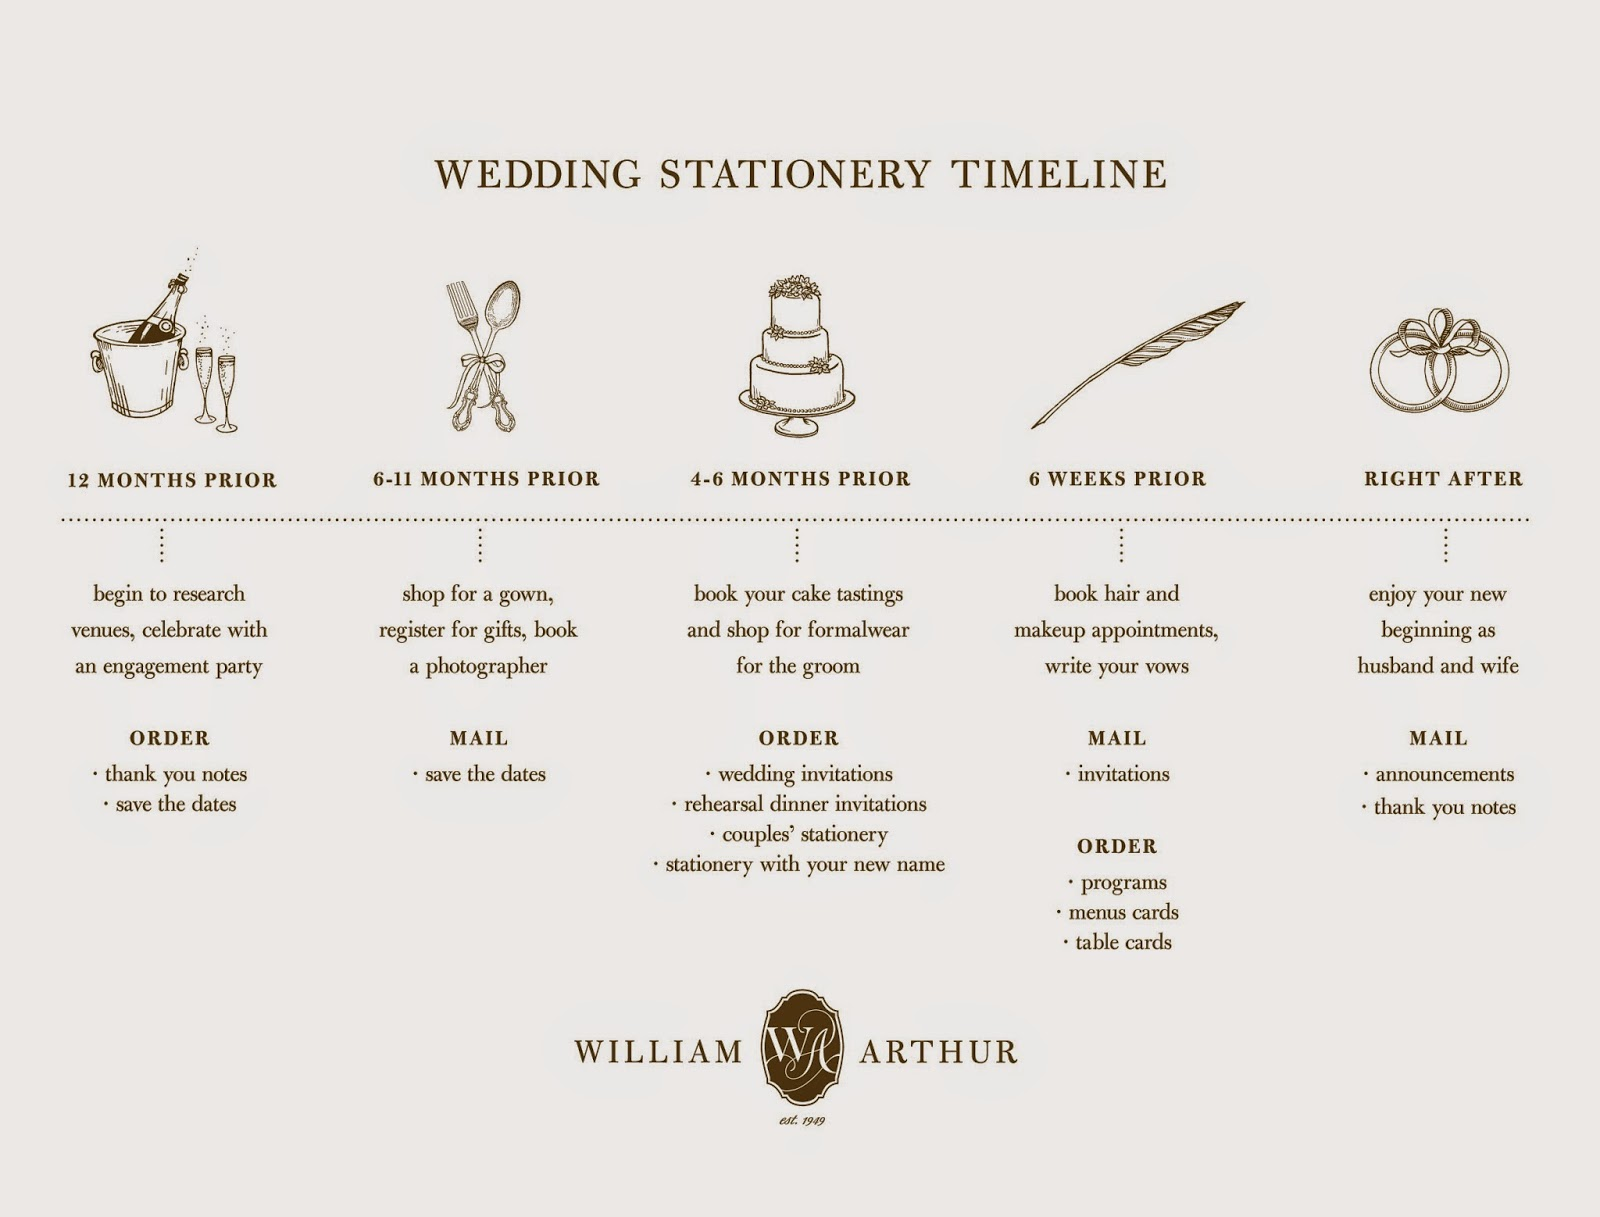 View An Enlarged Version Of Our Wedding Timeline